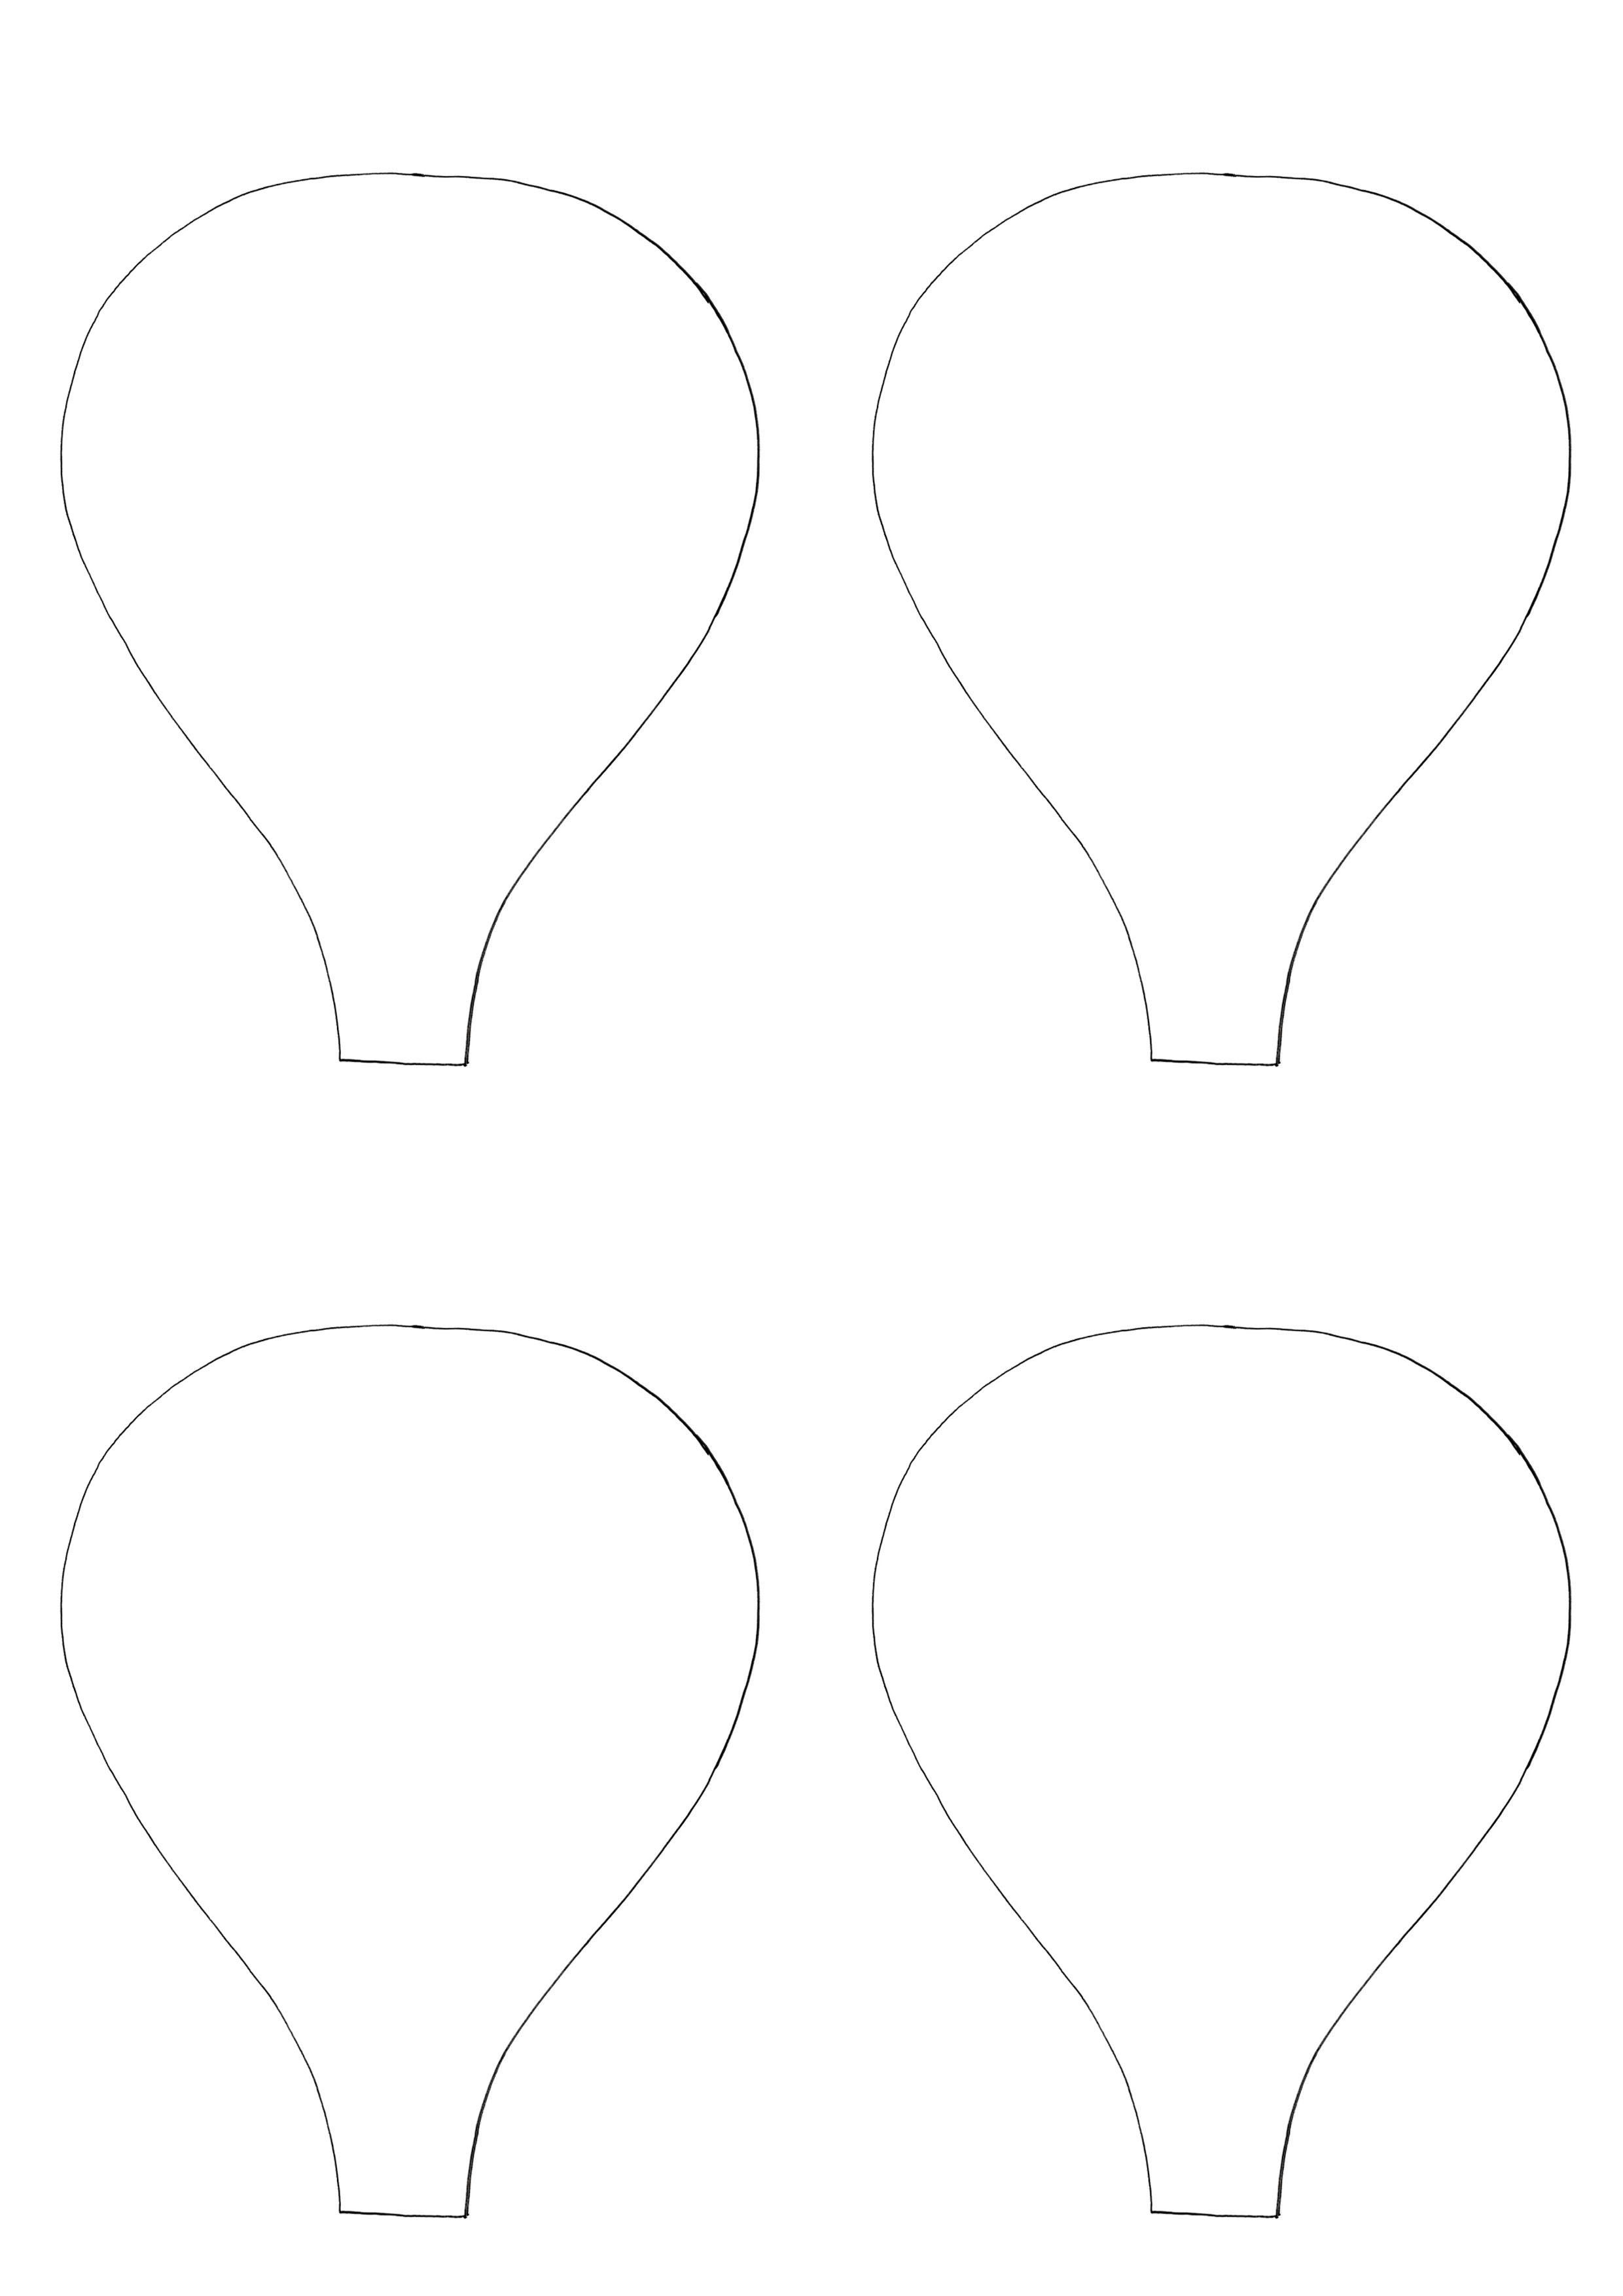 Images For > Hot Air Balloon Template   decoracion   Pinterest ...